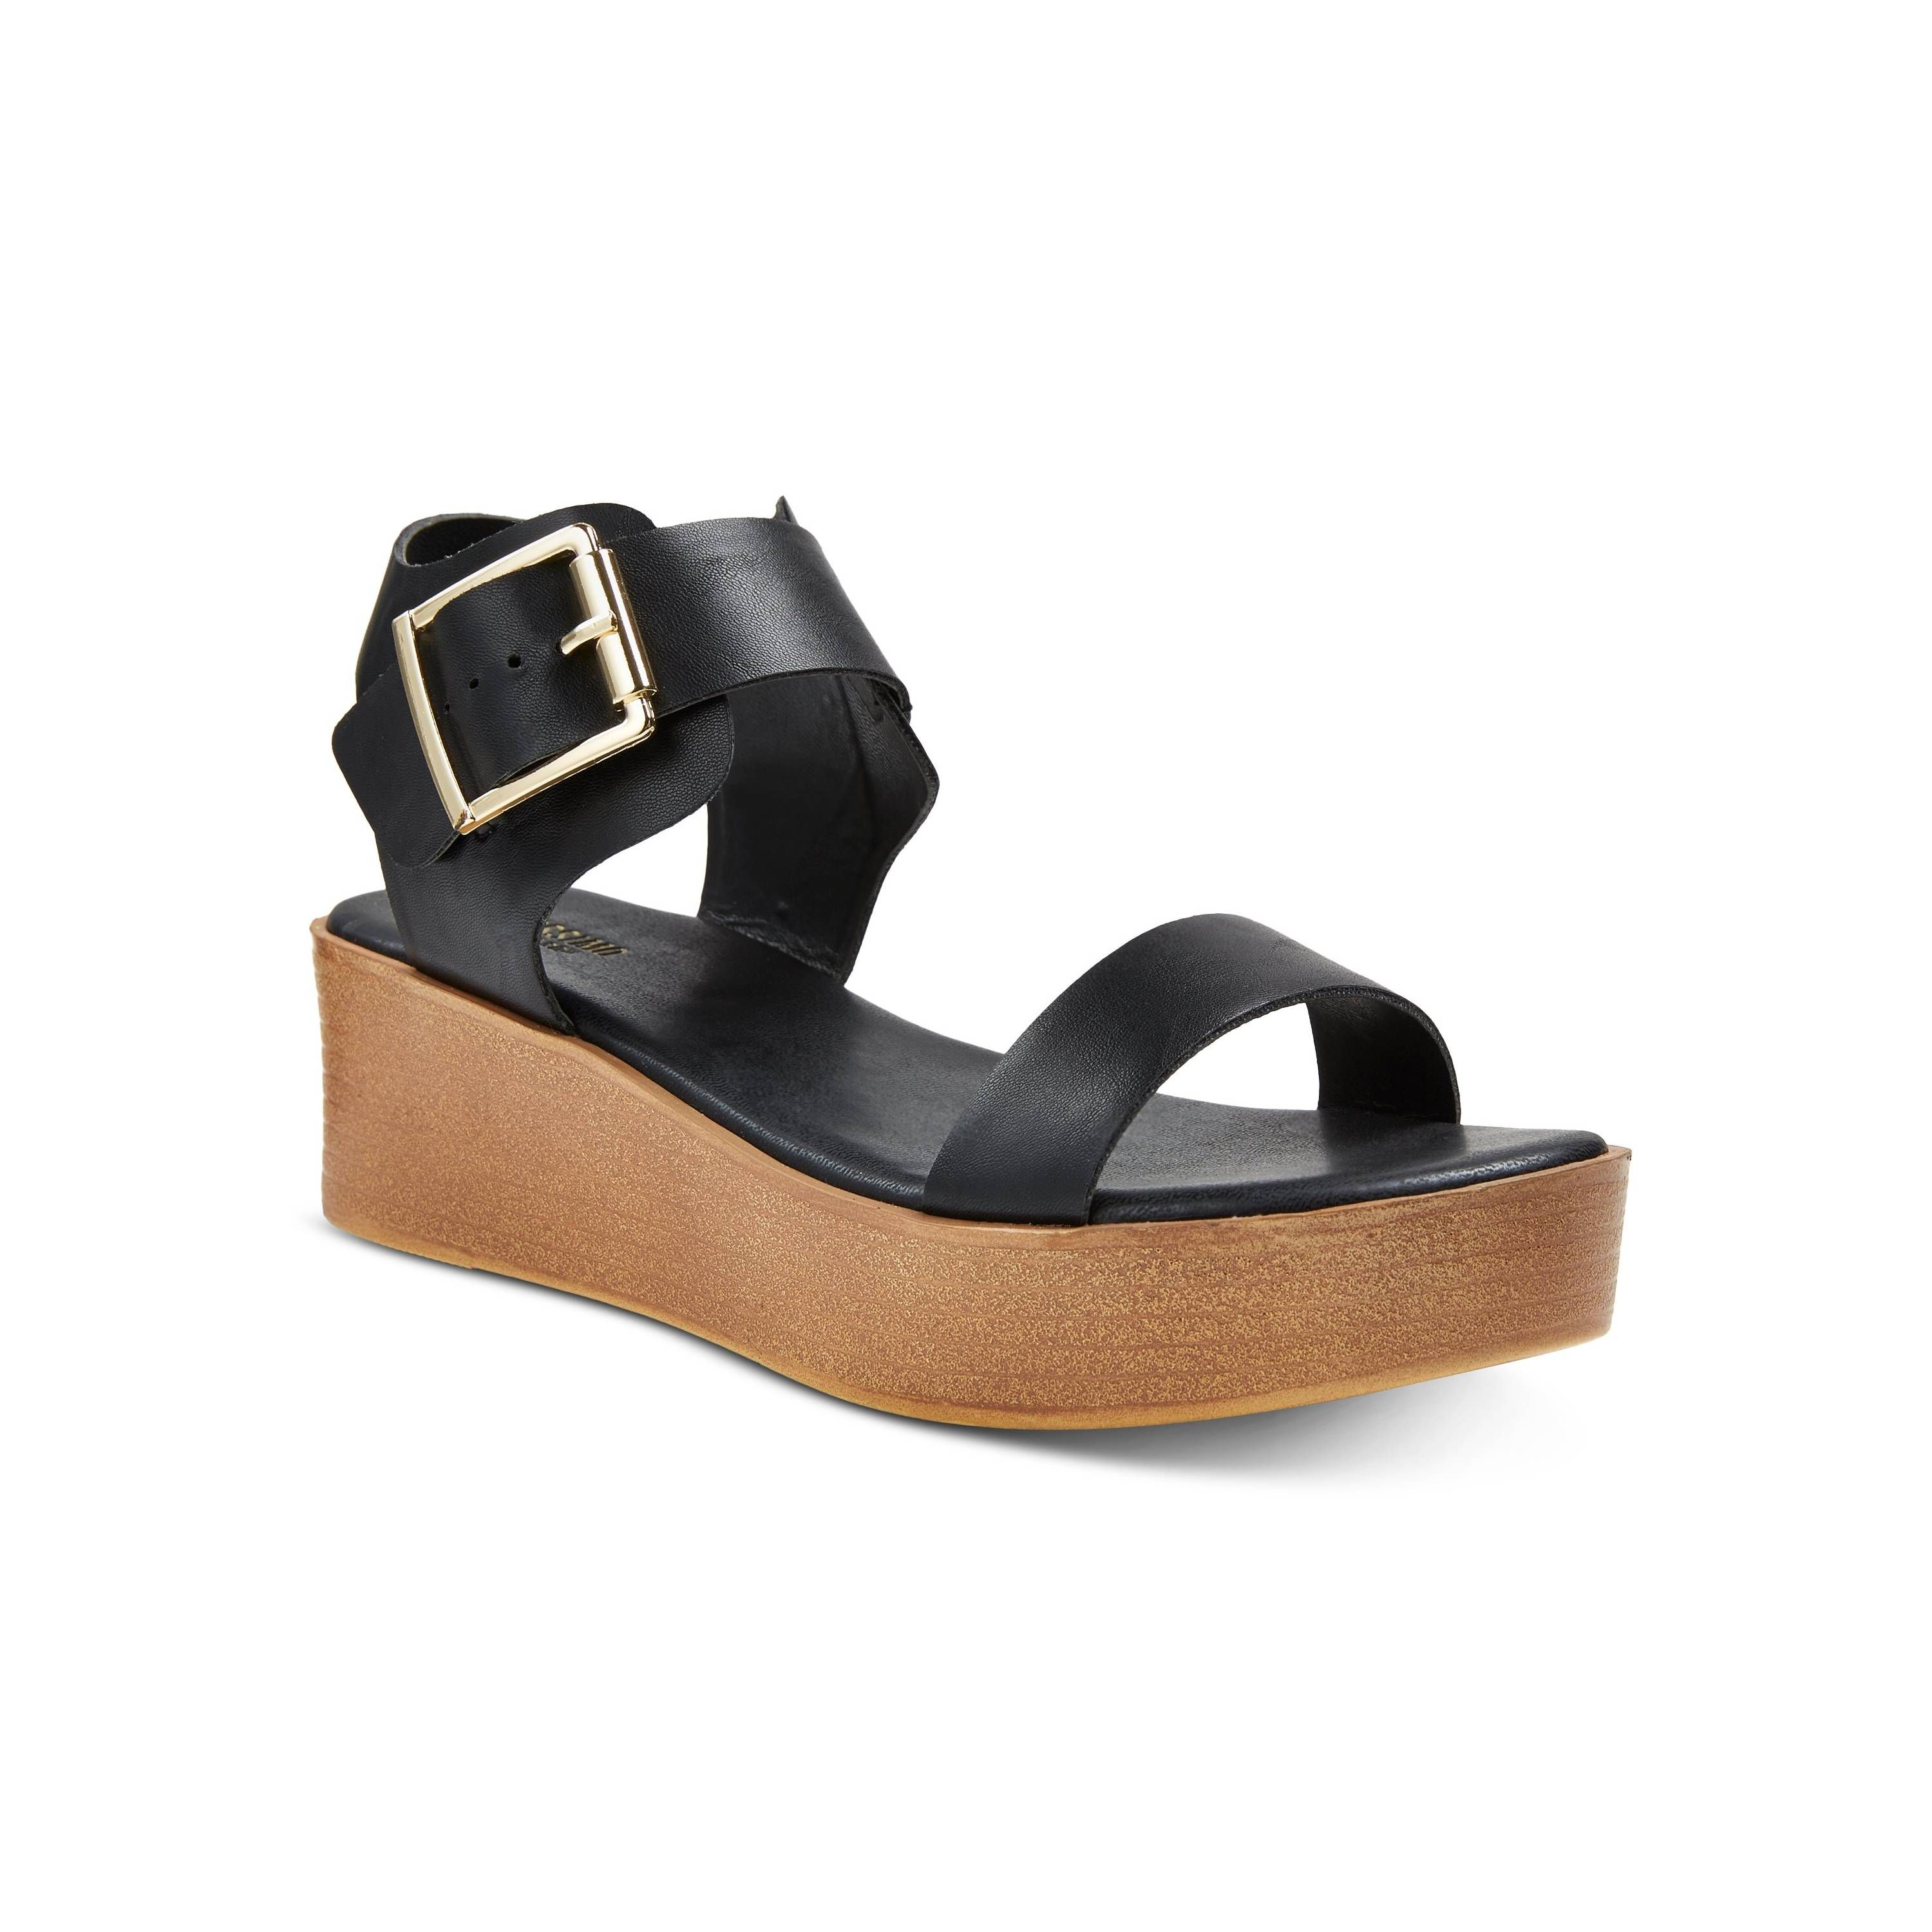 5af879a326f Women s Gretchen Quarter Strap Sandals - Mossimo Supply Co. ™ from Target